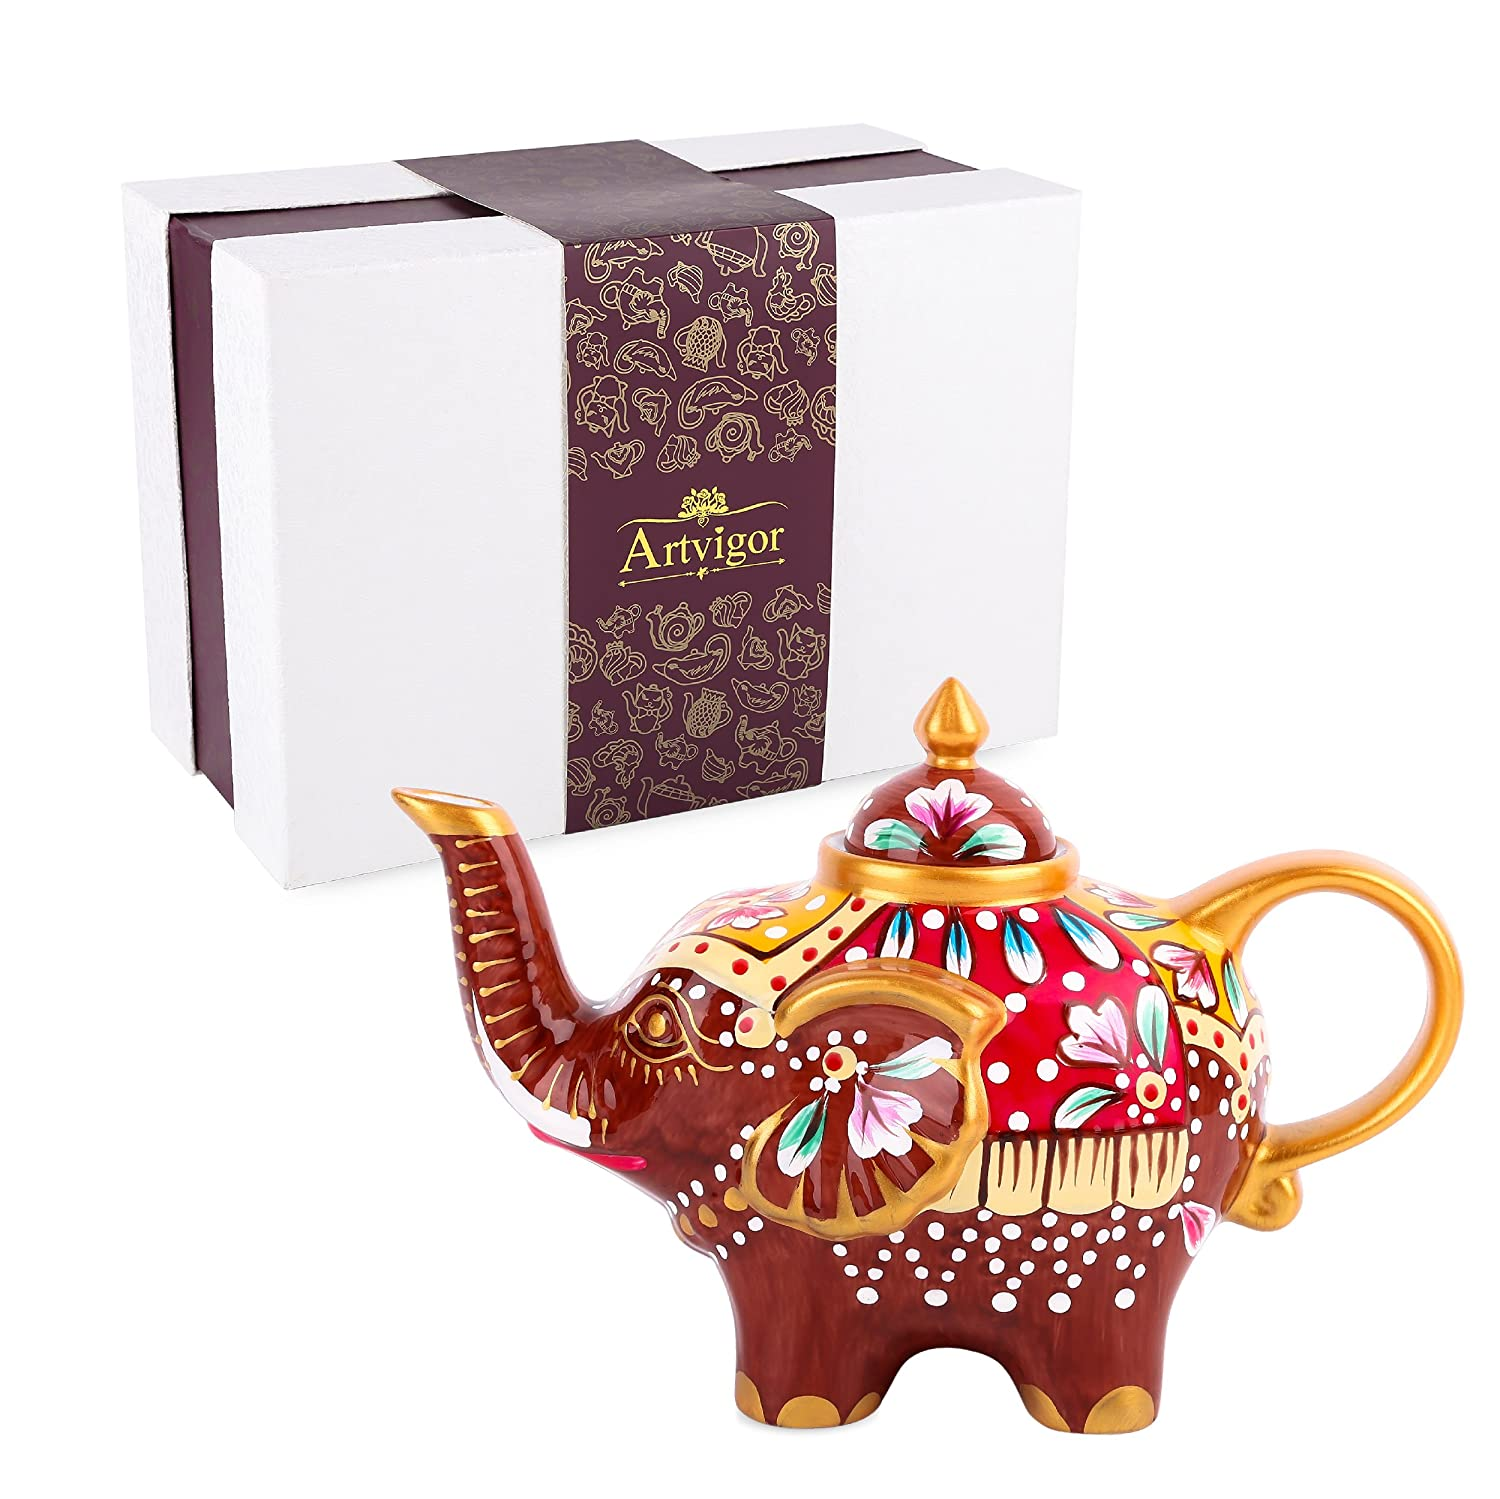 Artvigor Porcelain Hand Painted Multicolor Elephant Coffeepots Teapot Crafts with Gift Box,800ml